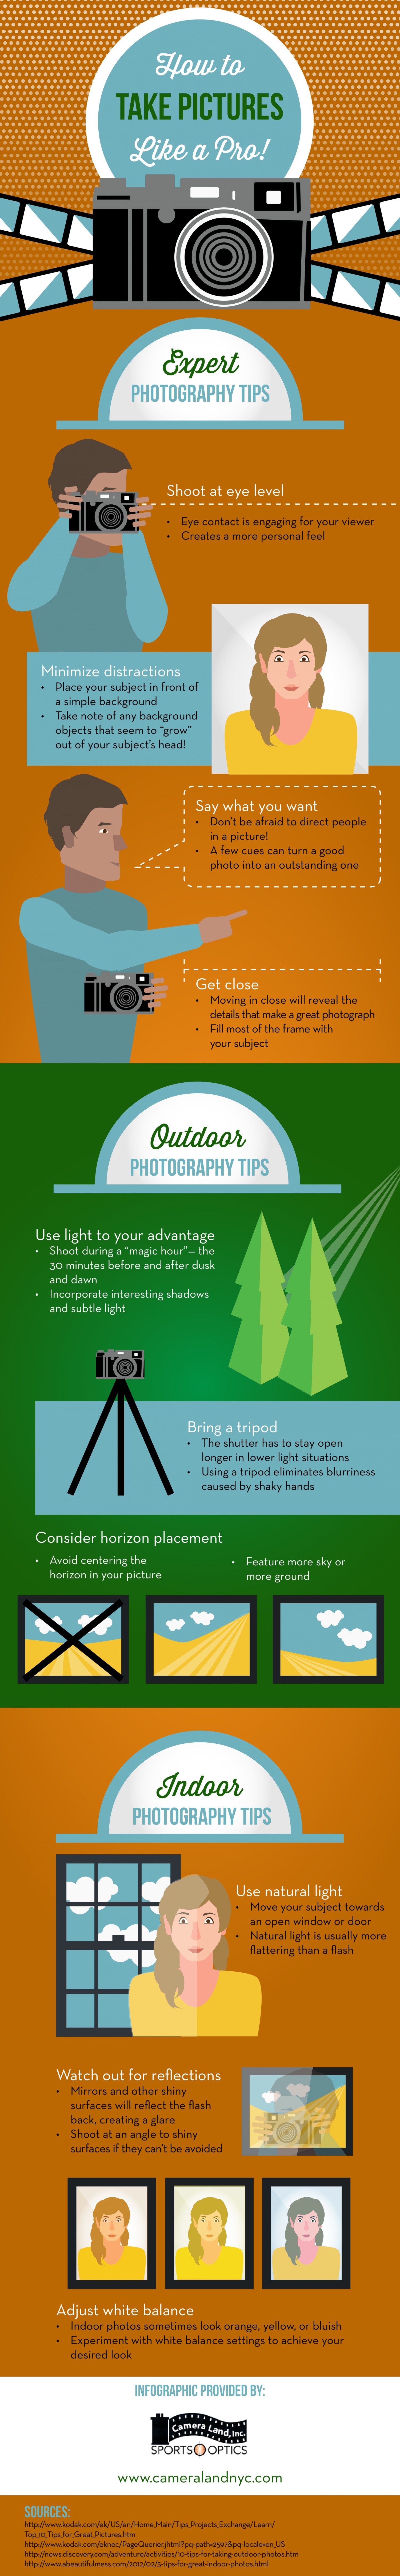 2. How to take pictures like a pro